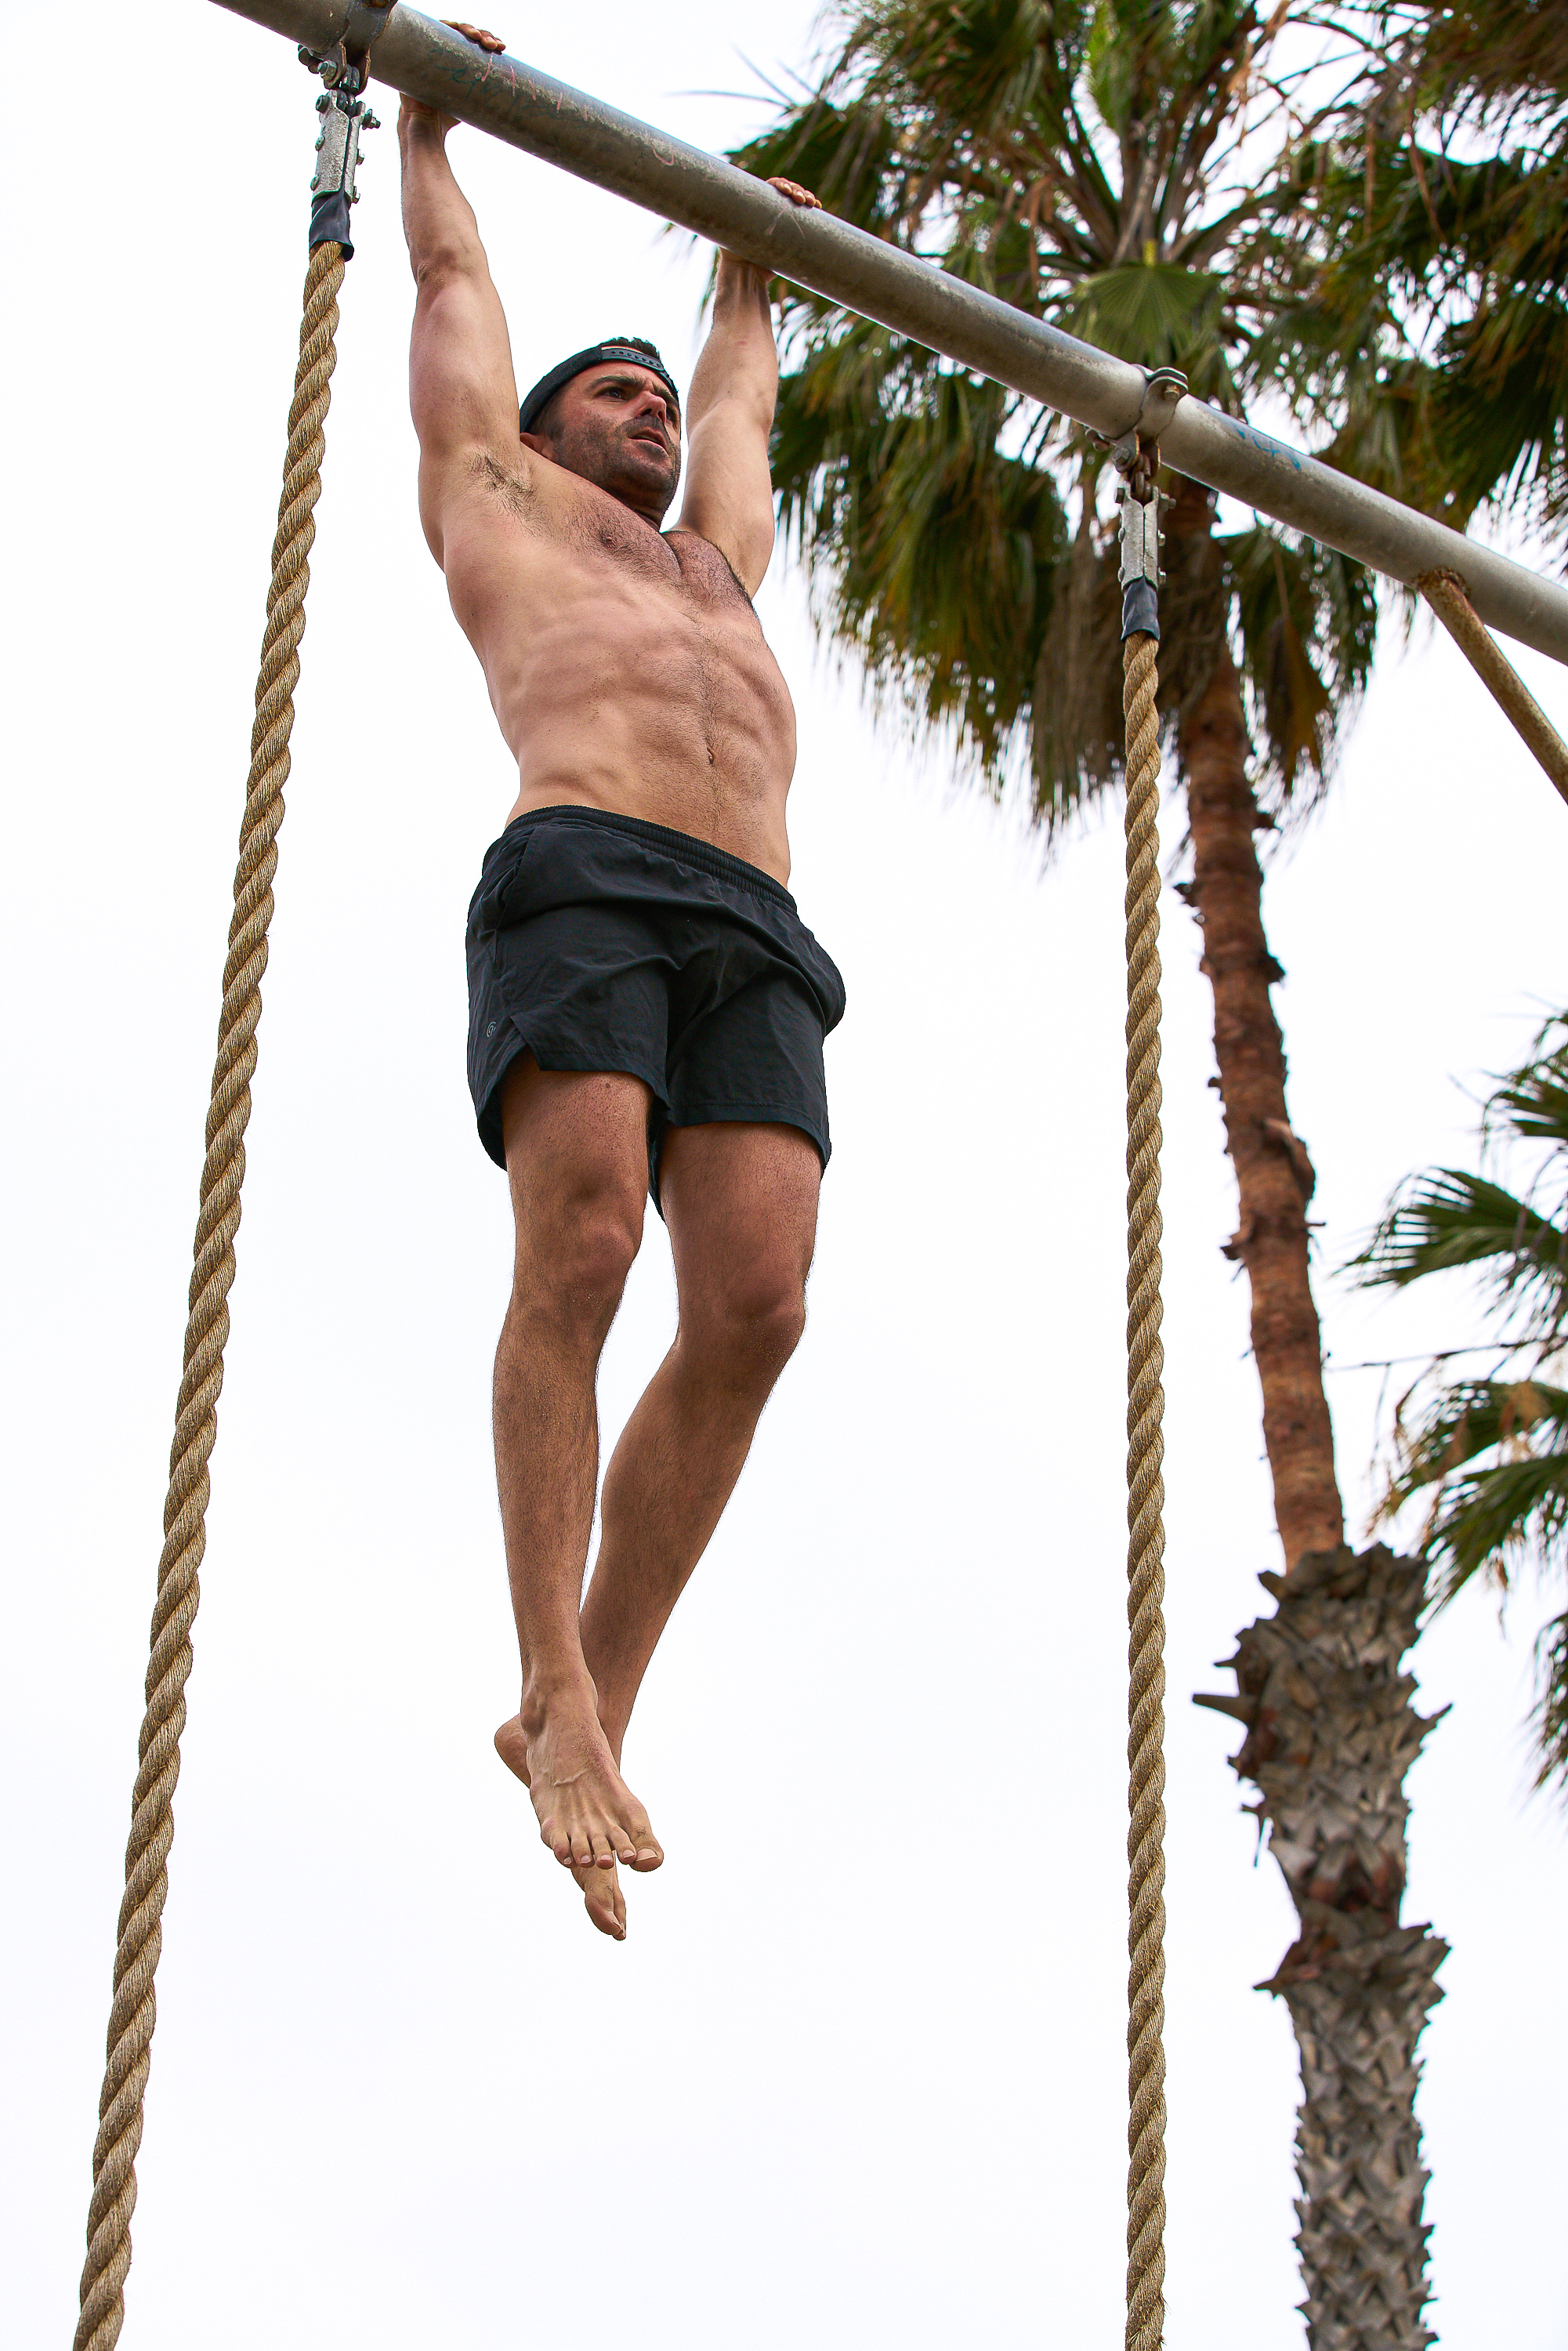 Perfect Day in Santa Monica 5 hour ENERGY Justin Walter muscle beach